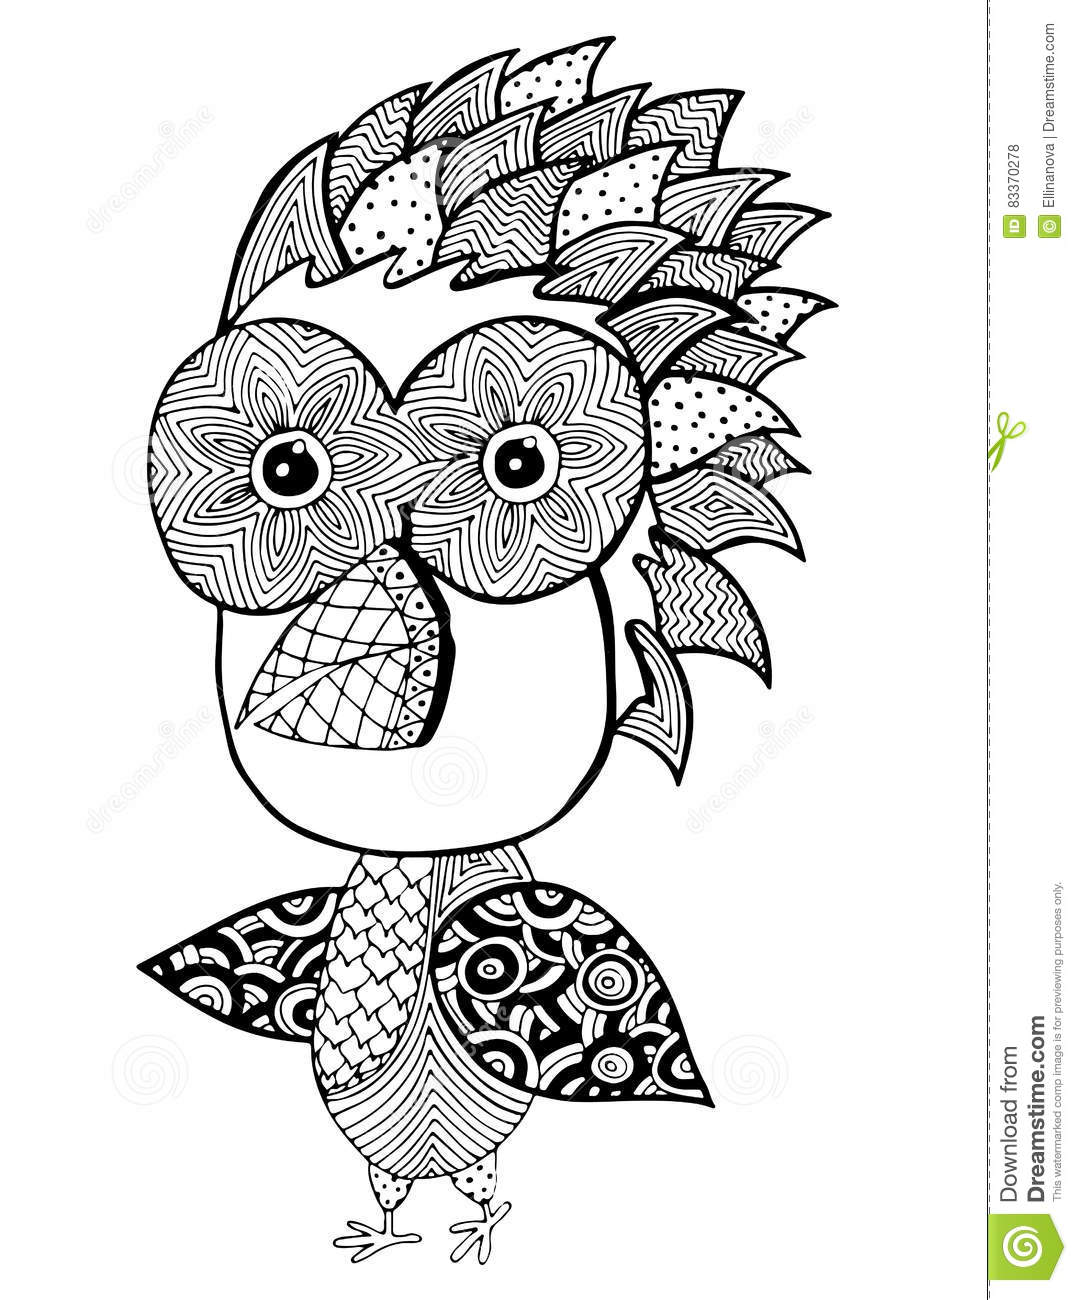 Abstract Bird Coloring Pages : Abstract of birds coloring pages